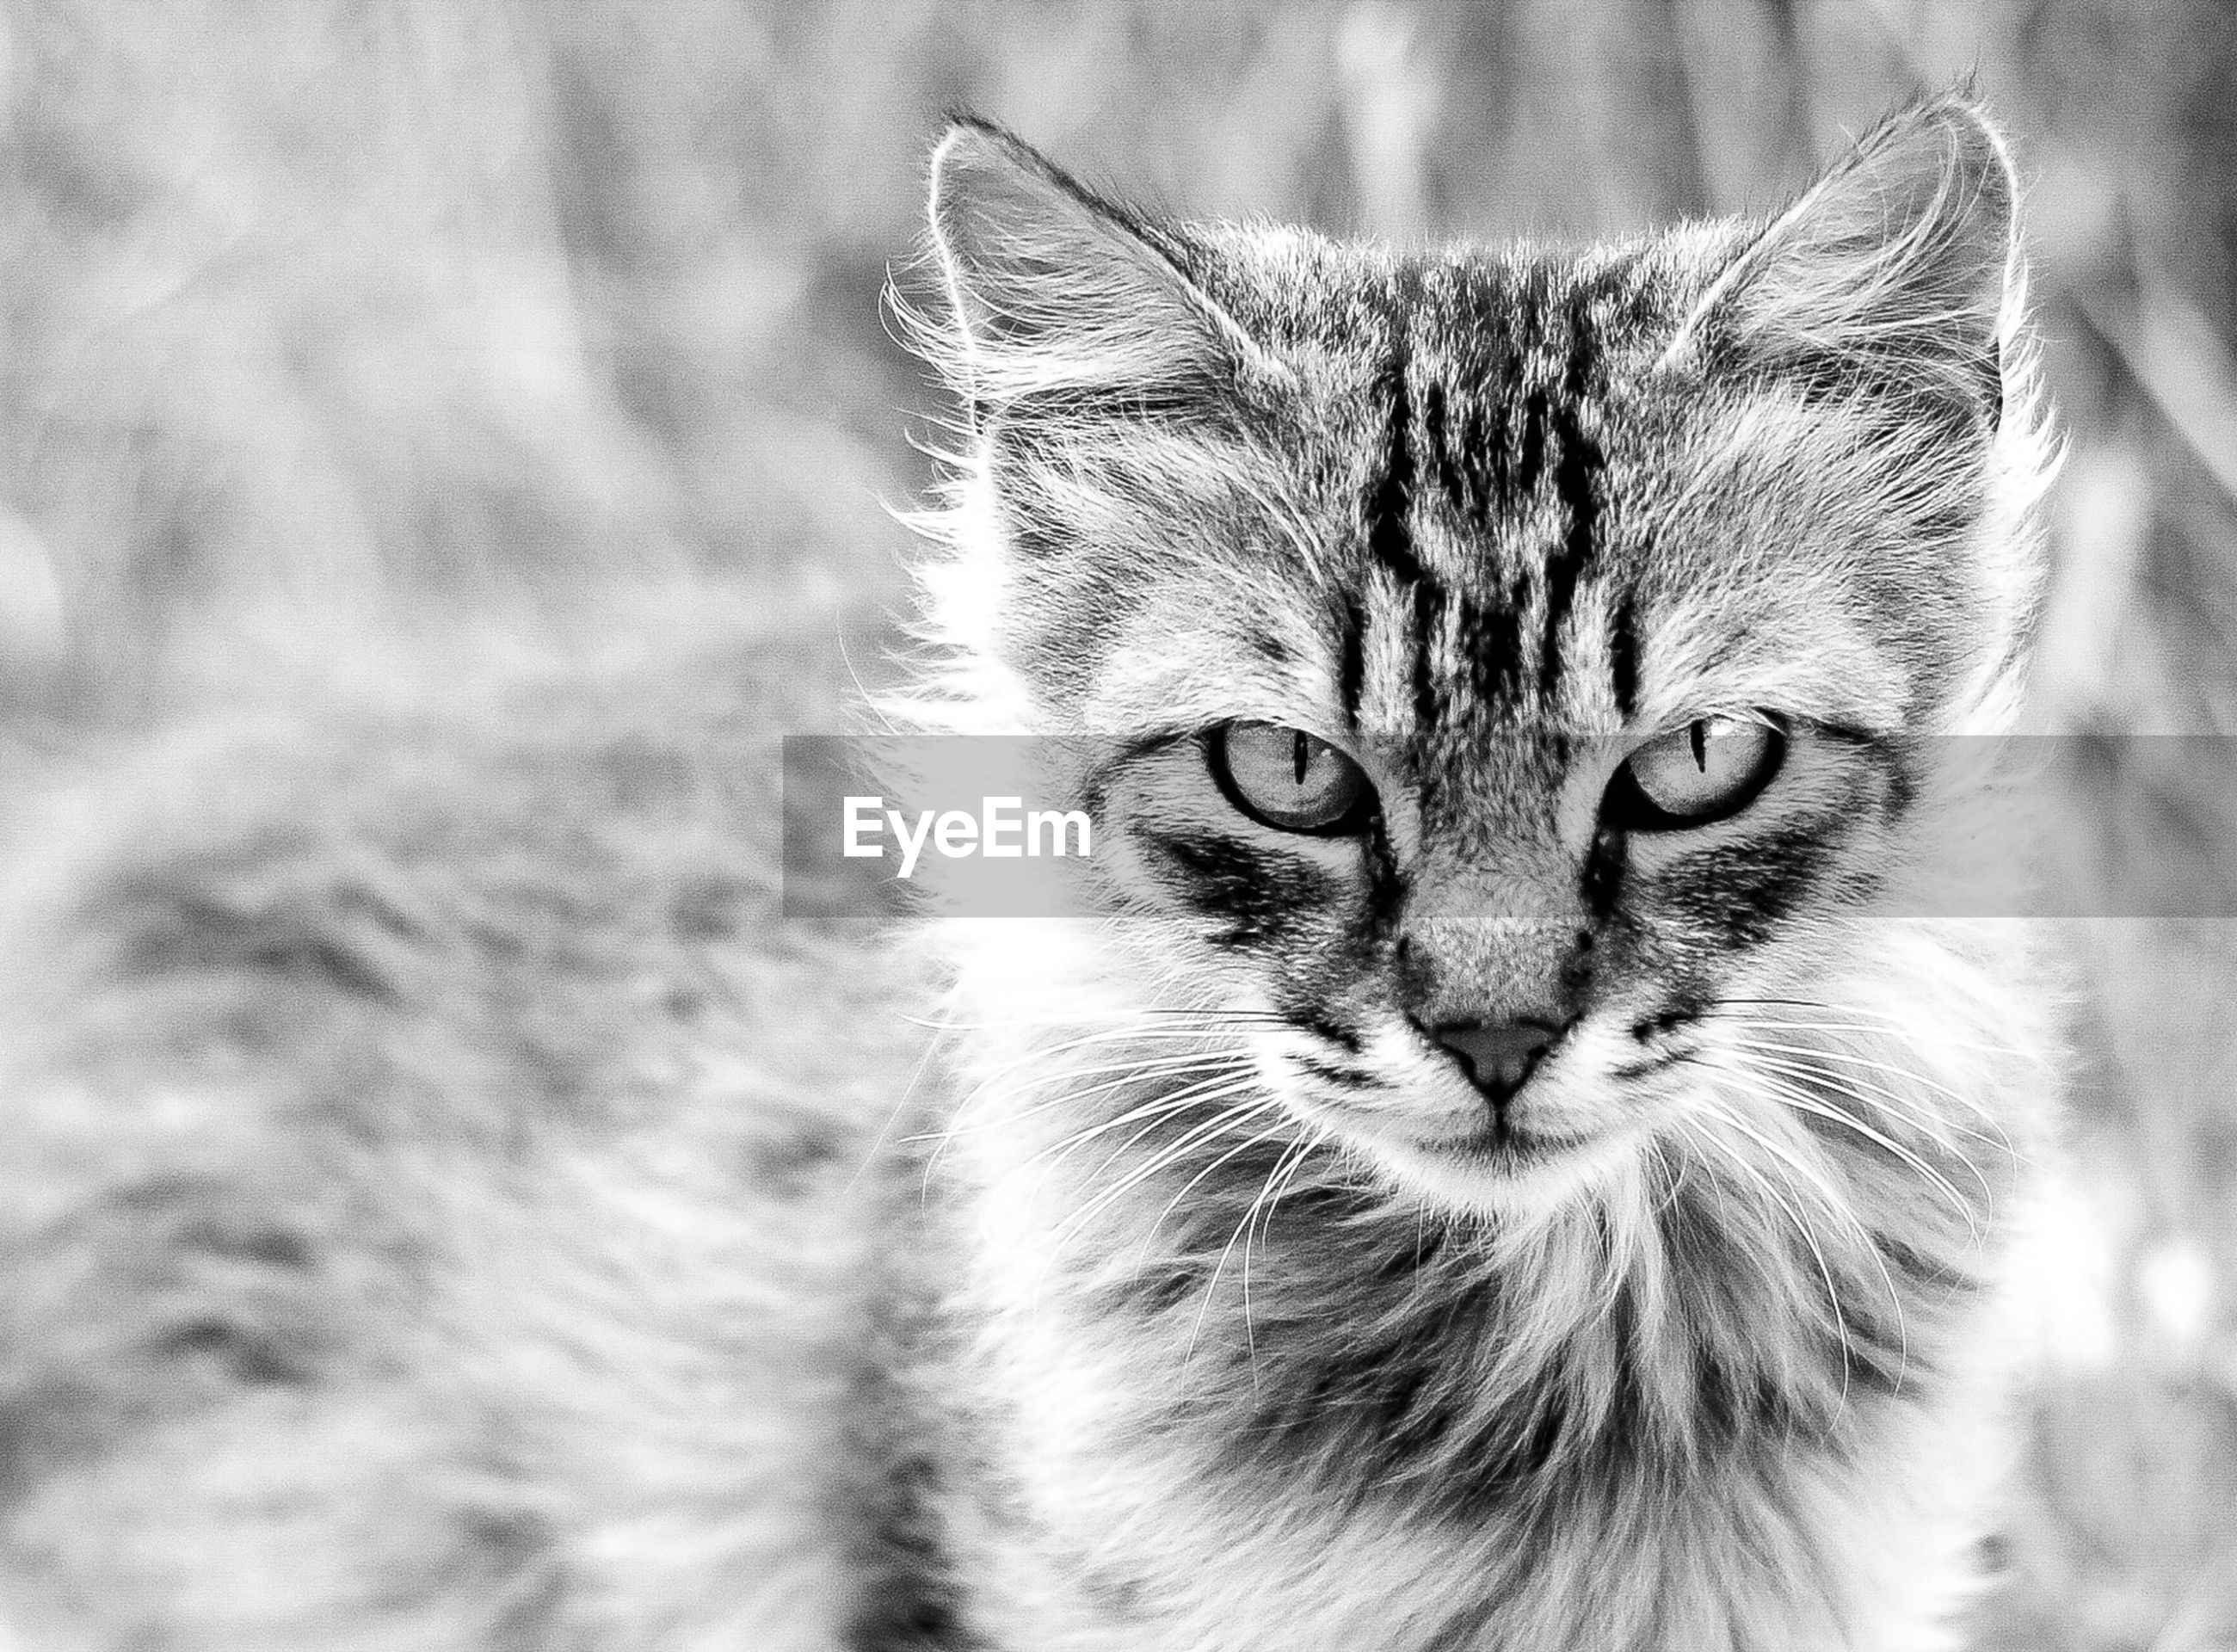 animal themes, one animal, domestic cat, mammal, pets, domestic animals, cat, whisker, feline, animal head, close-up, portrait, looking at camera, animal eye, focus on foreground, animal body part, alertness, animal hair, front view